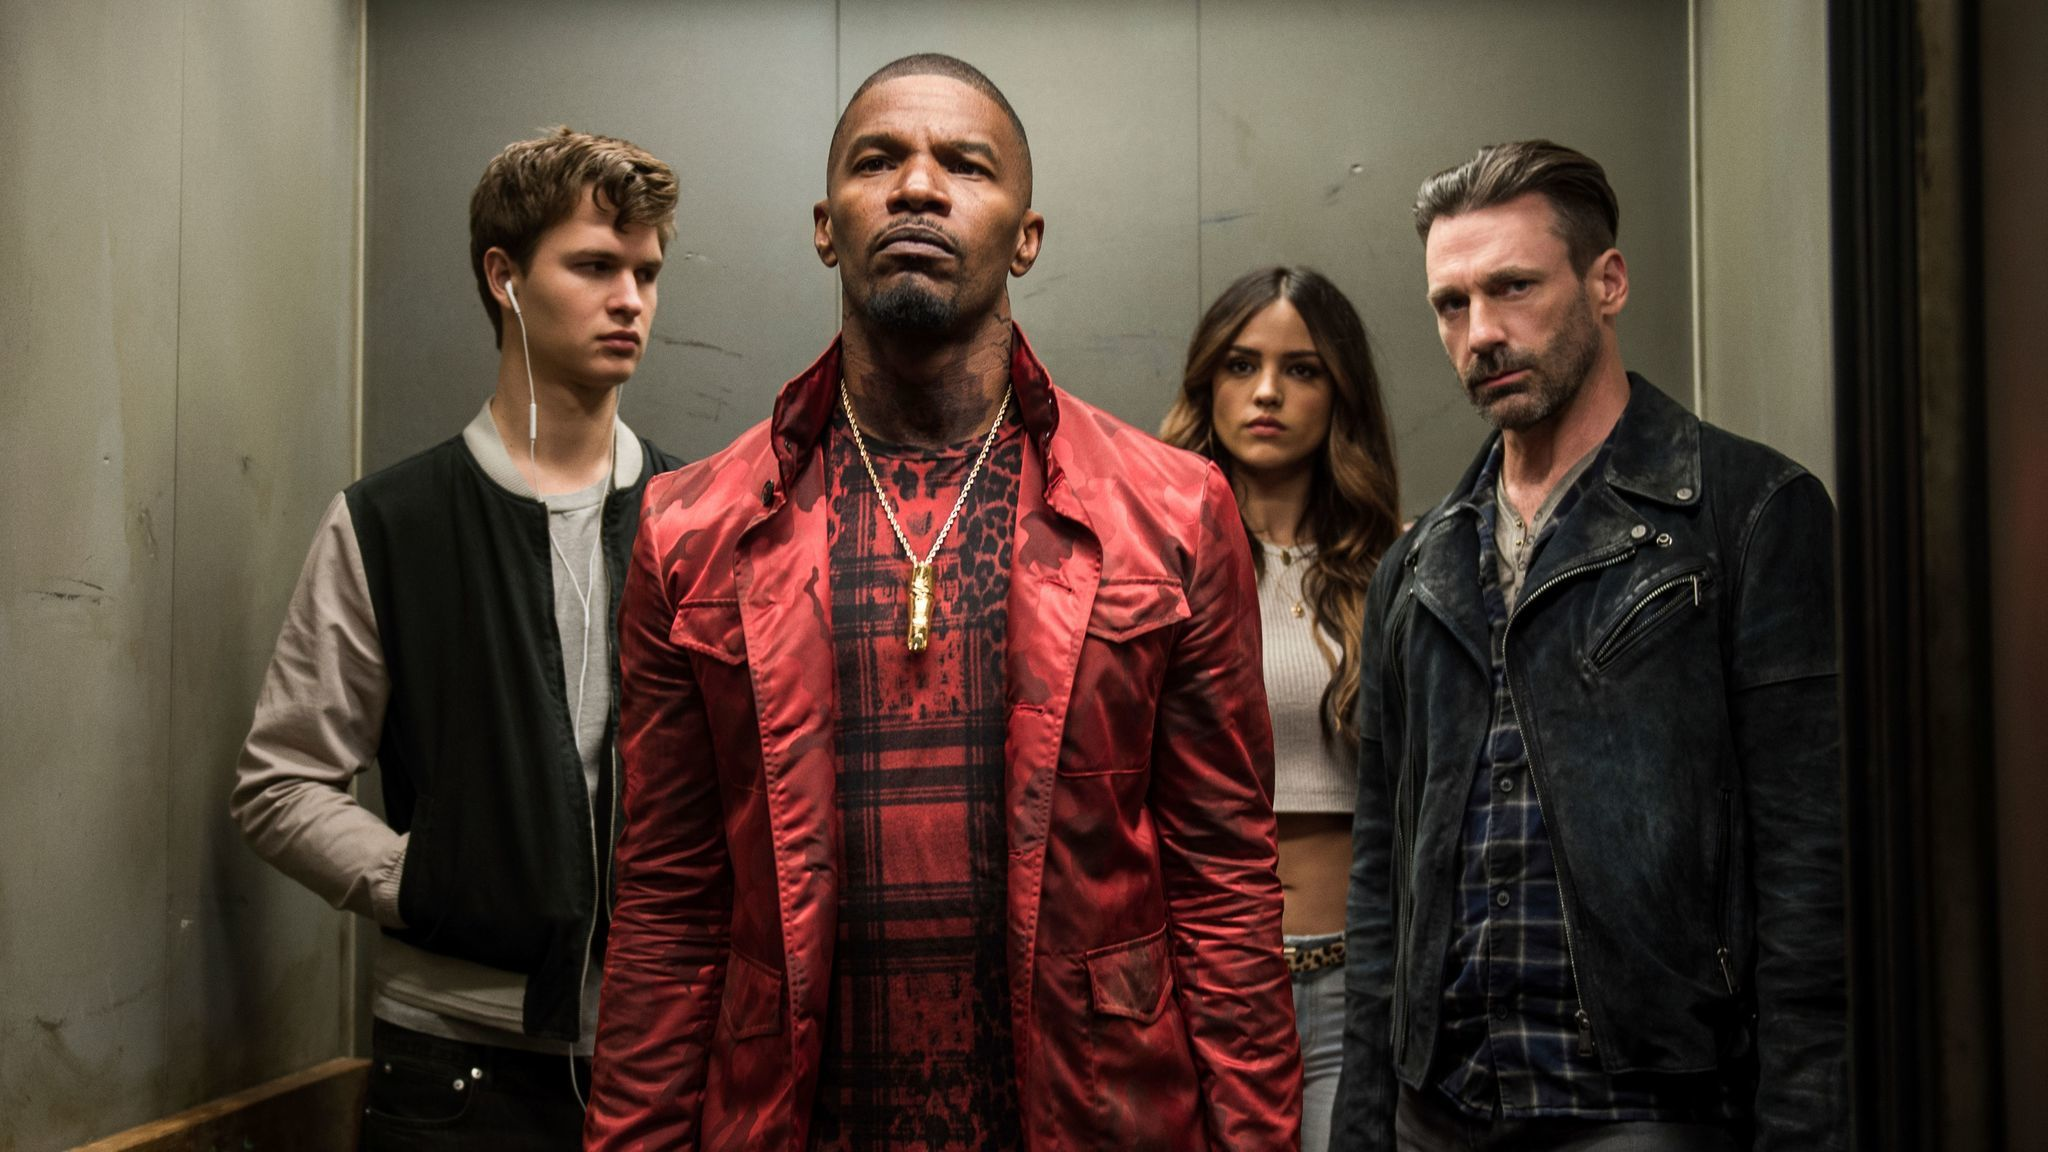 Ansel Elgort, from left, Jamie Foxx, Eiza Gonzalez and Jon Hamm star as colorful criminals in Edgar Wright's action-musical